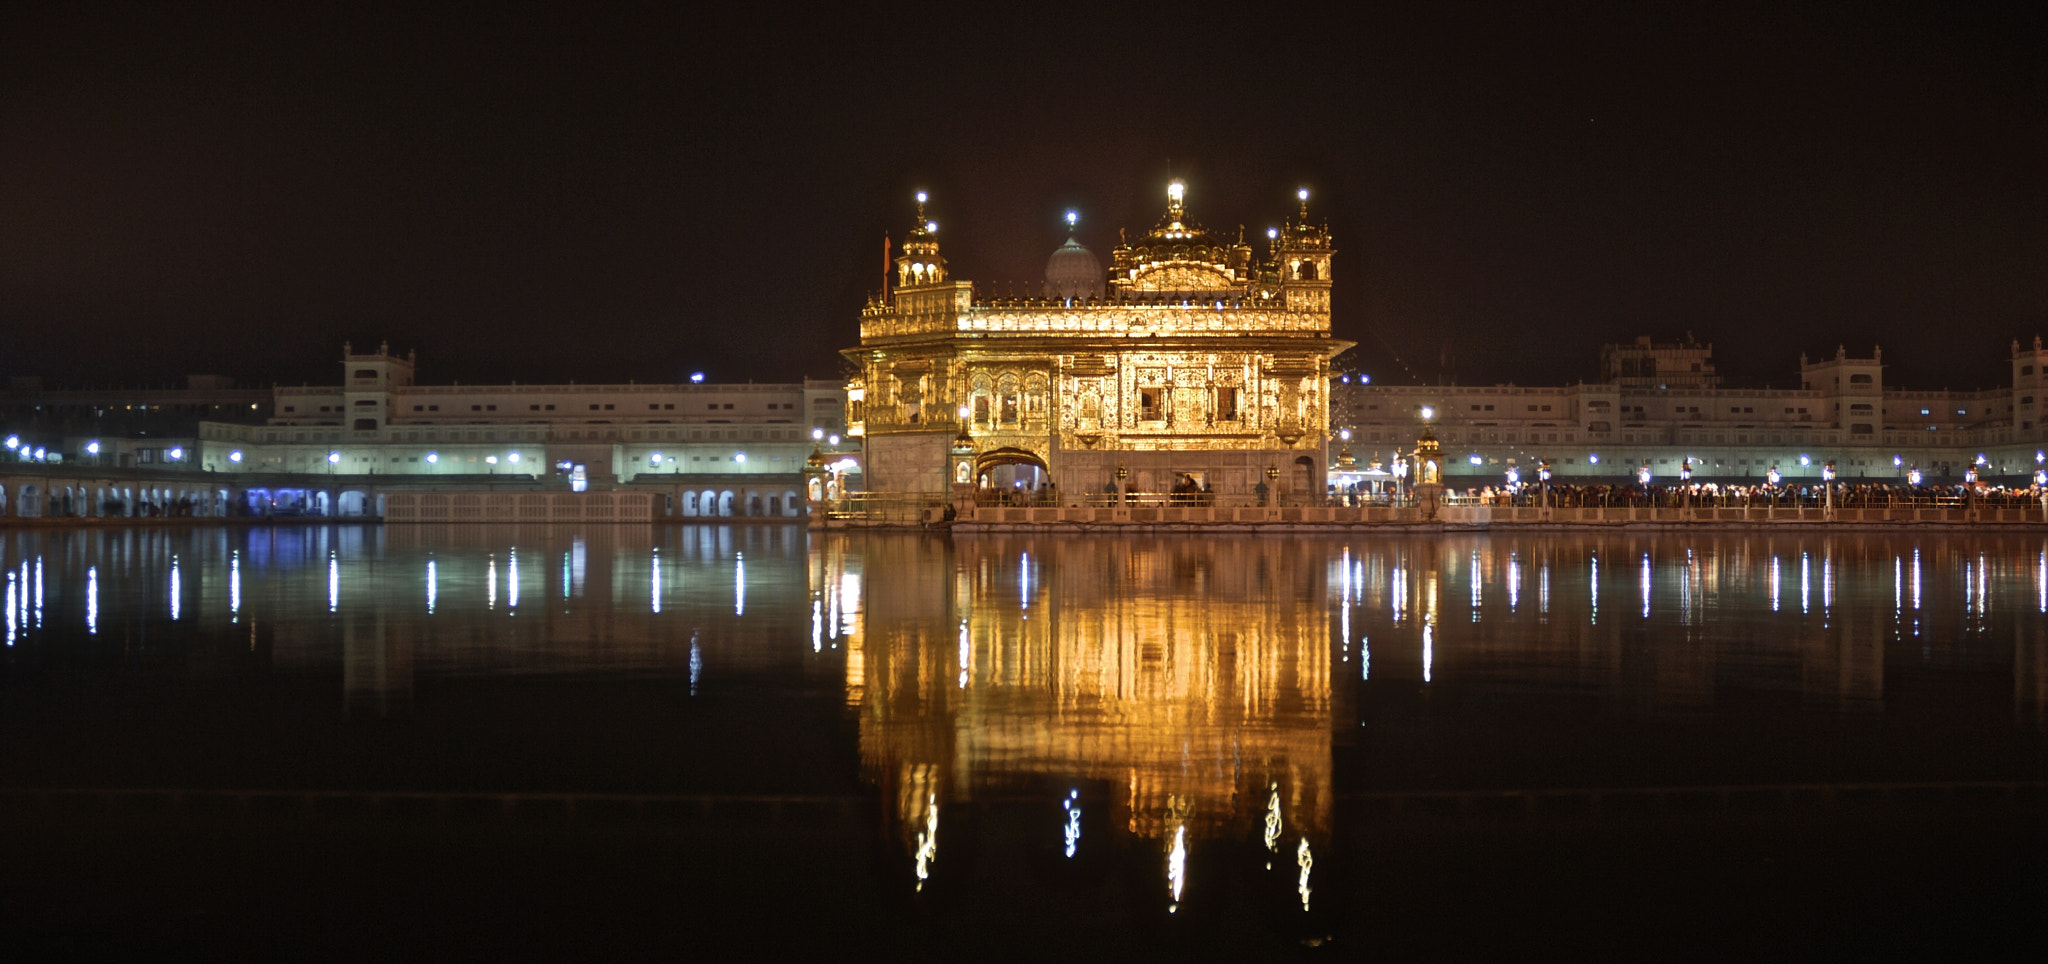 Photograph Golden Temple at Night by Lars Elmigrador on 500px